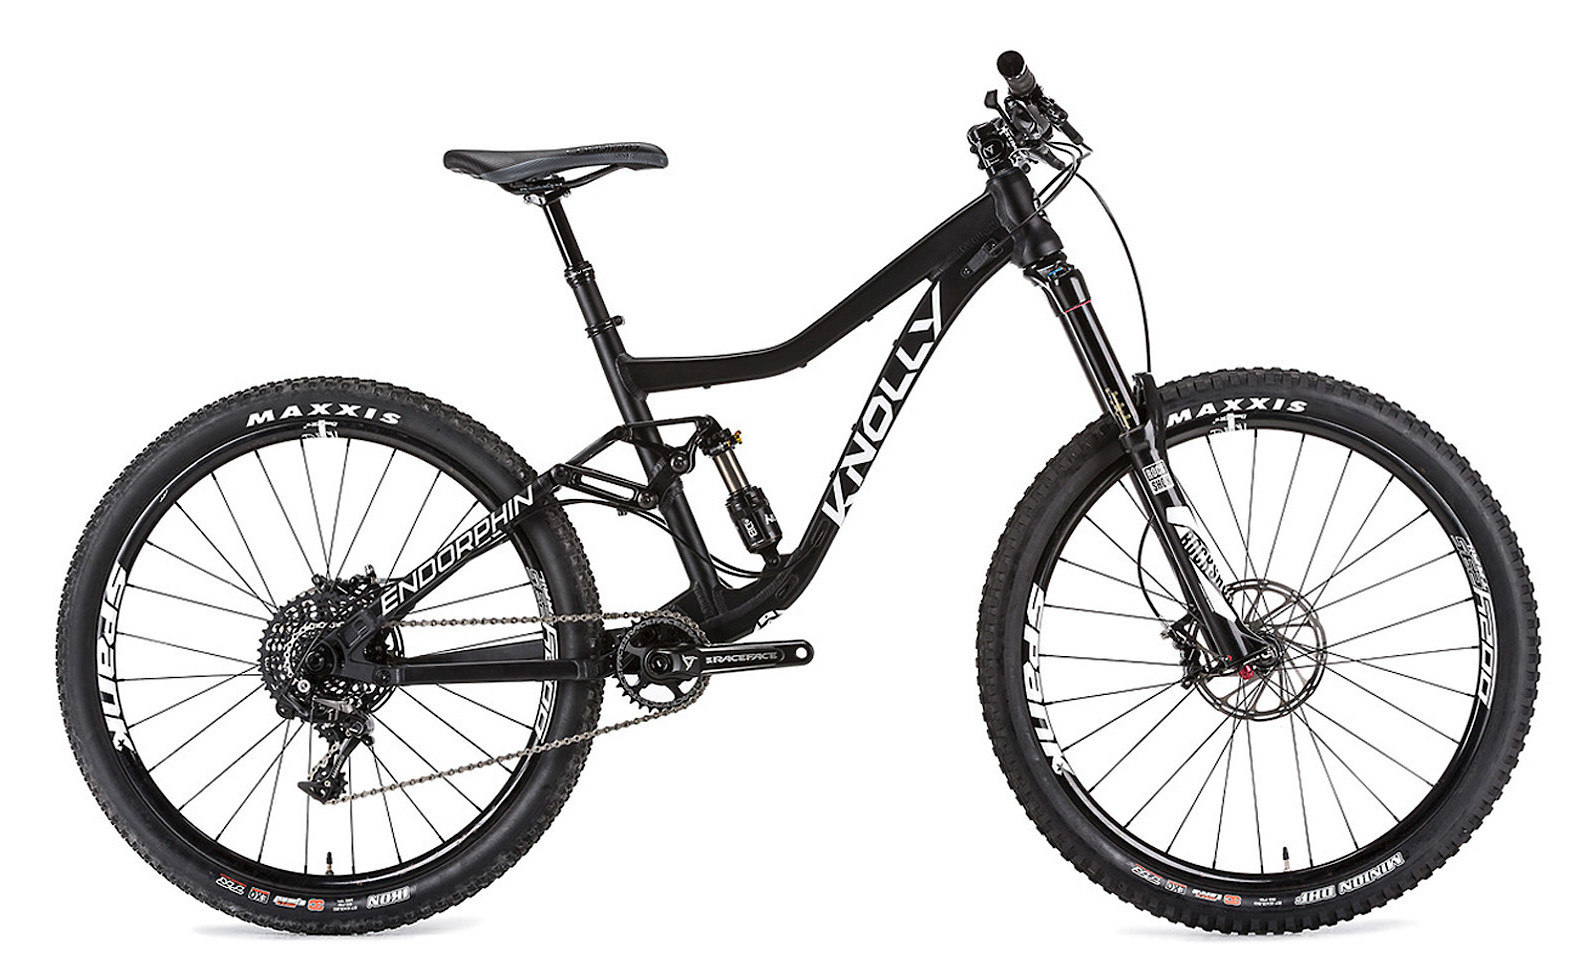 2019 Knolly Endorphin Dawn Patrol Bike (shown with different build options)